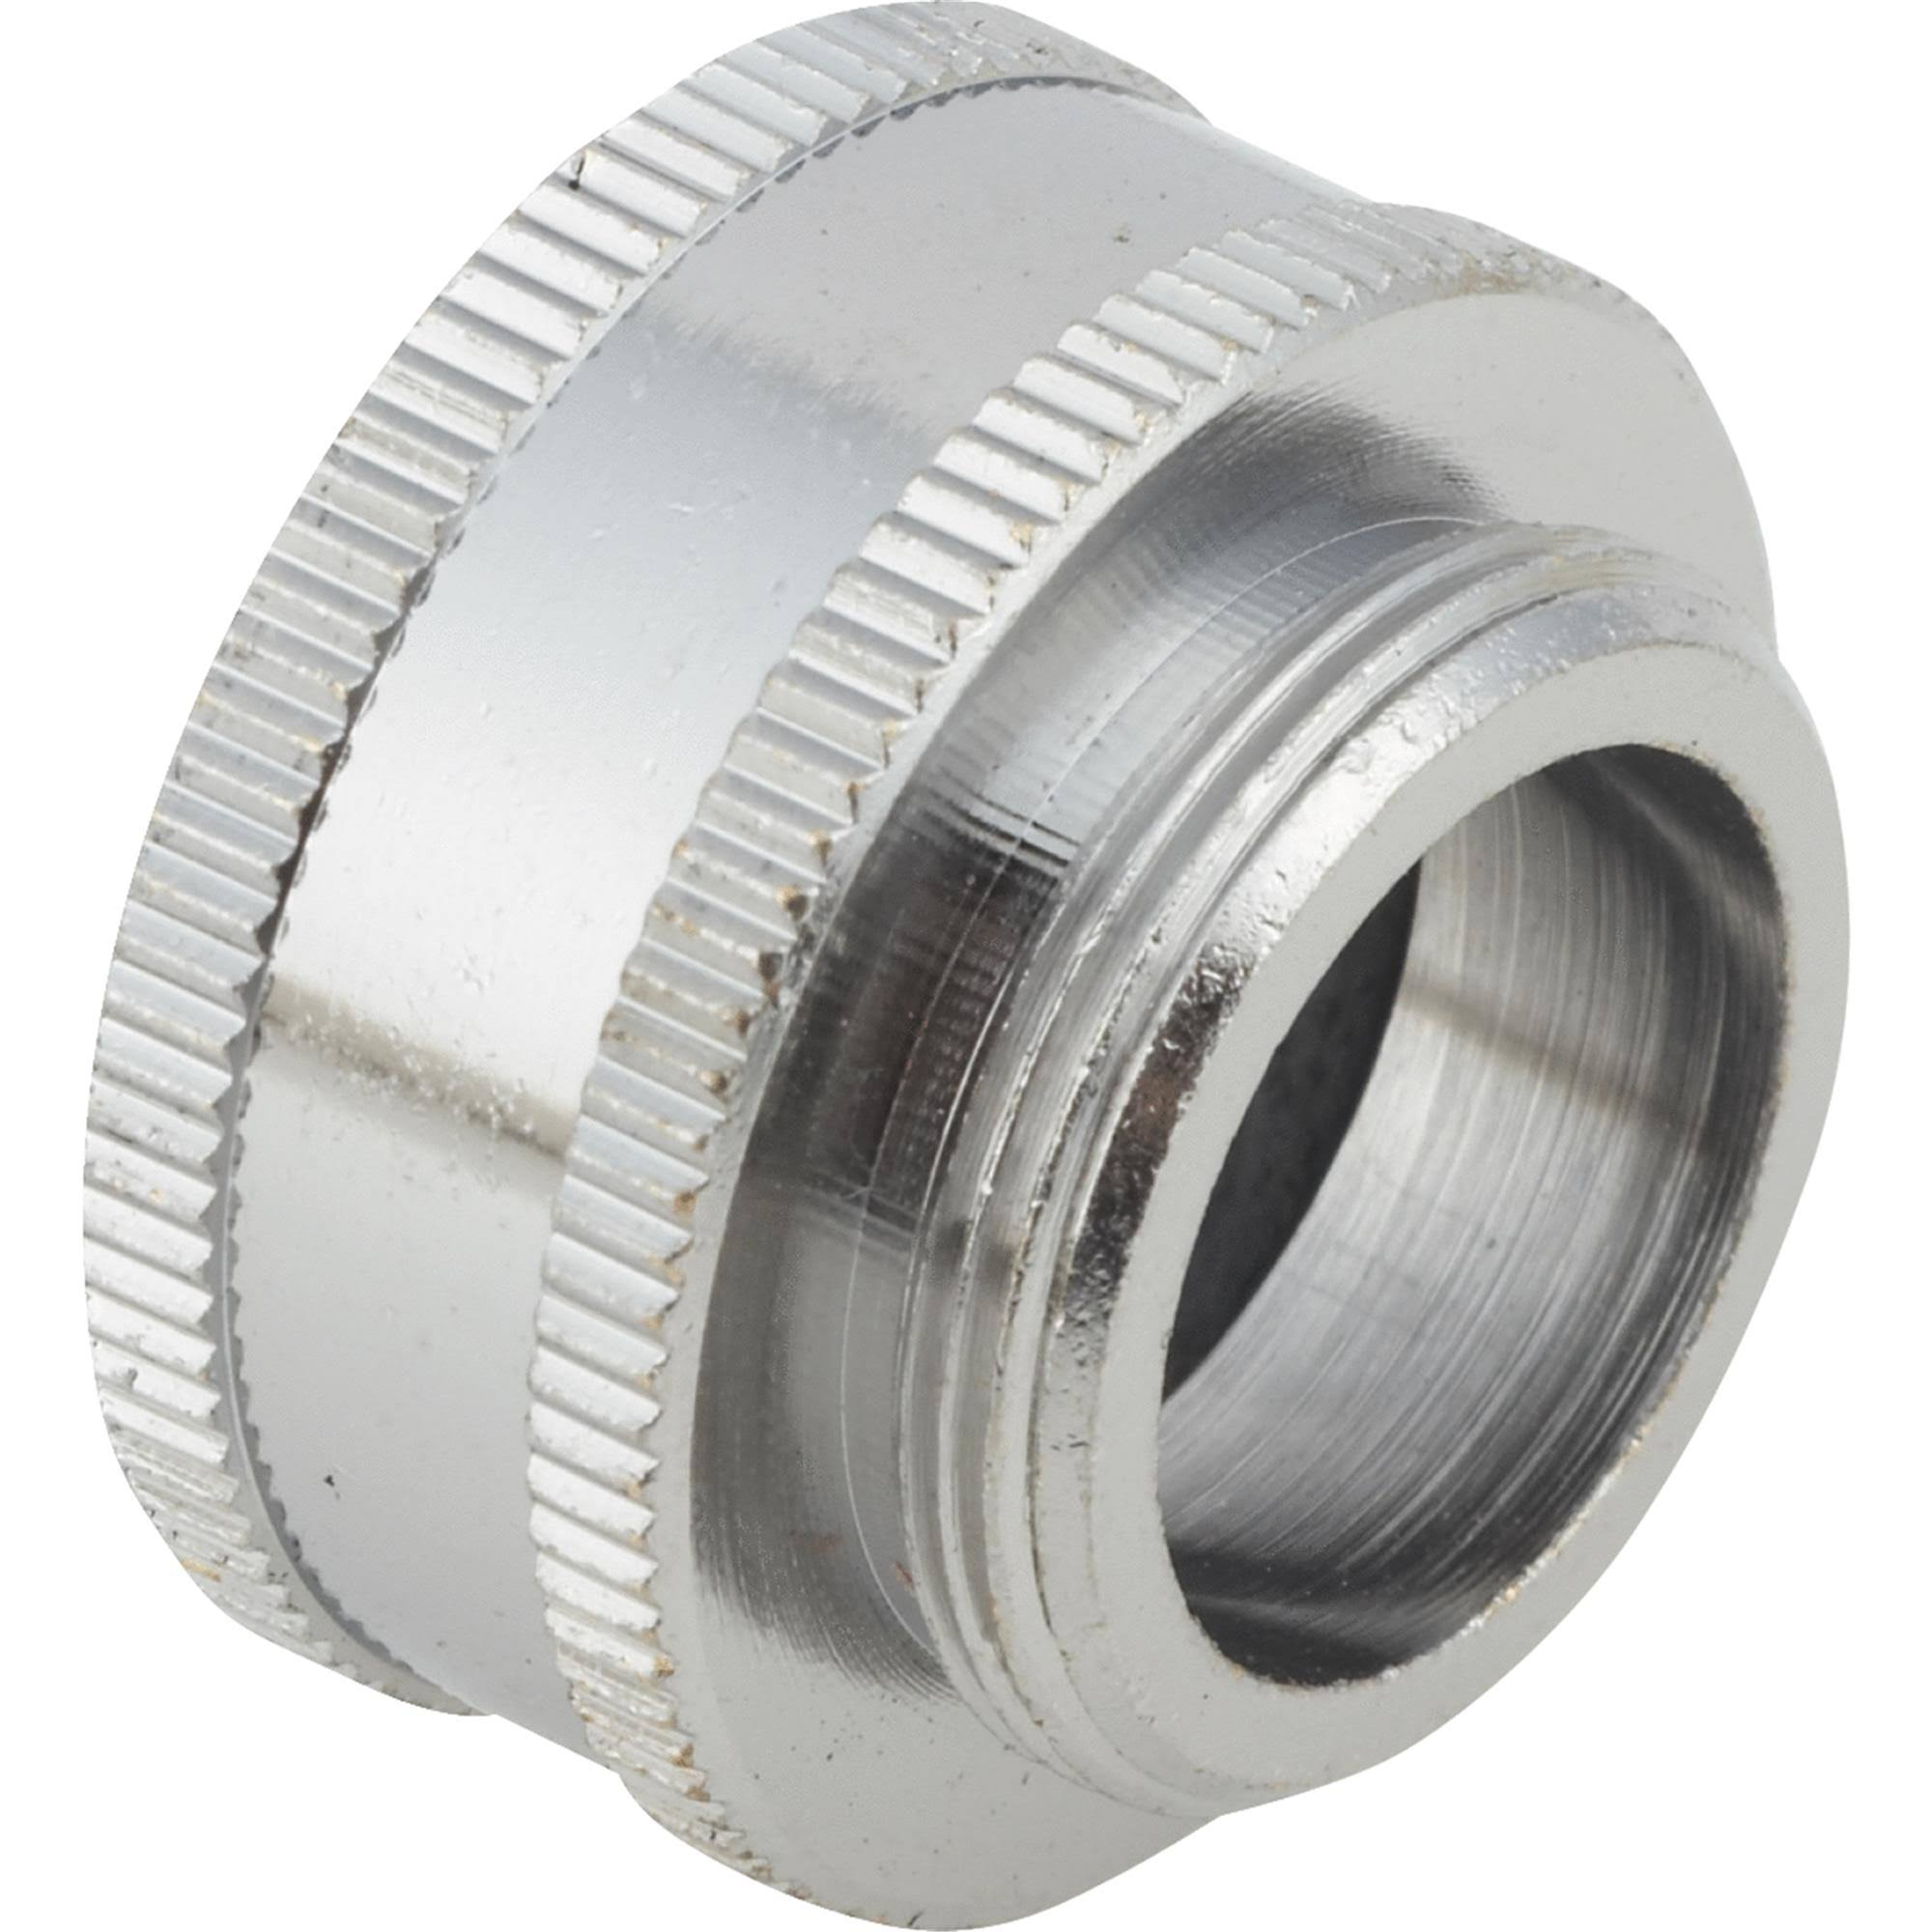 Do It Aerator Hose Thread Faucet Adapter - 1""